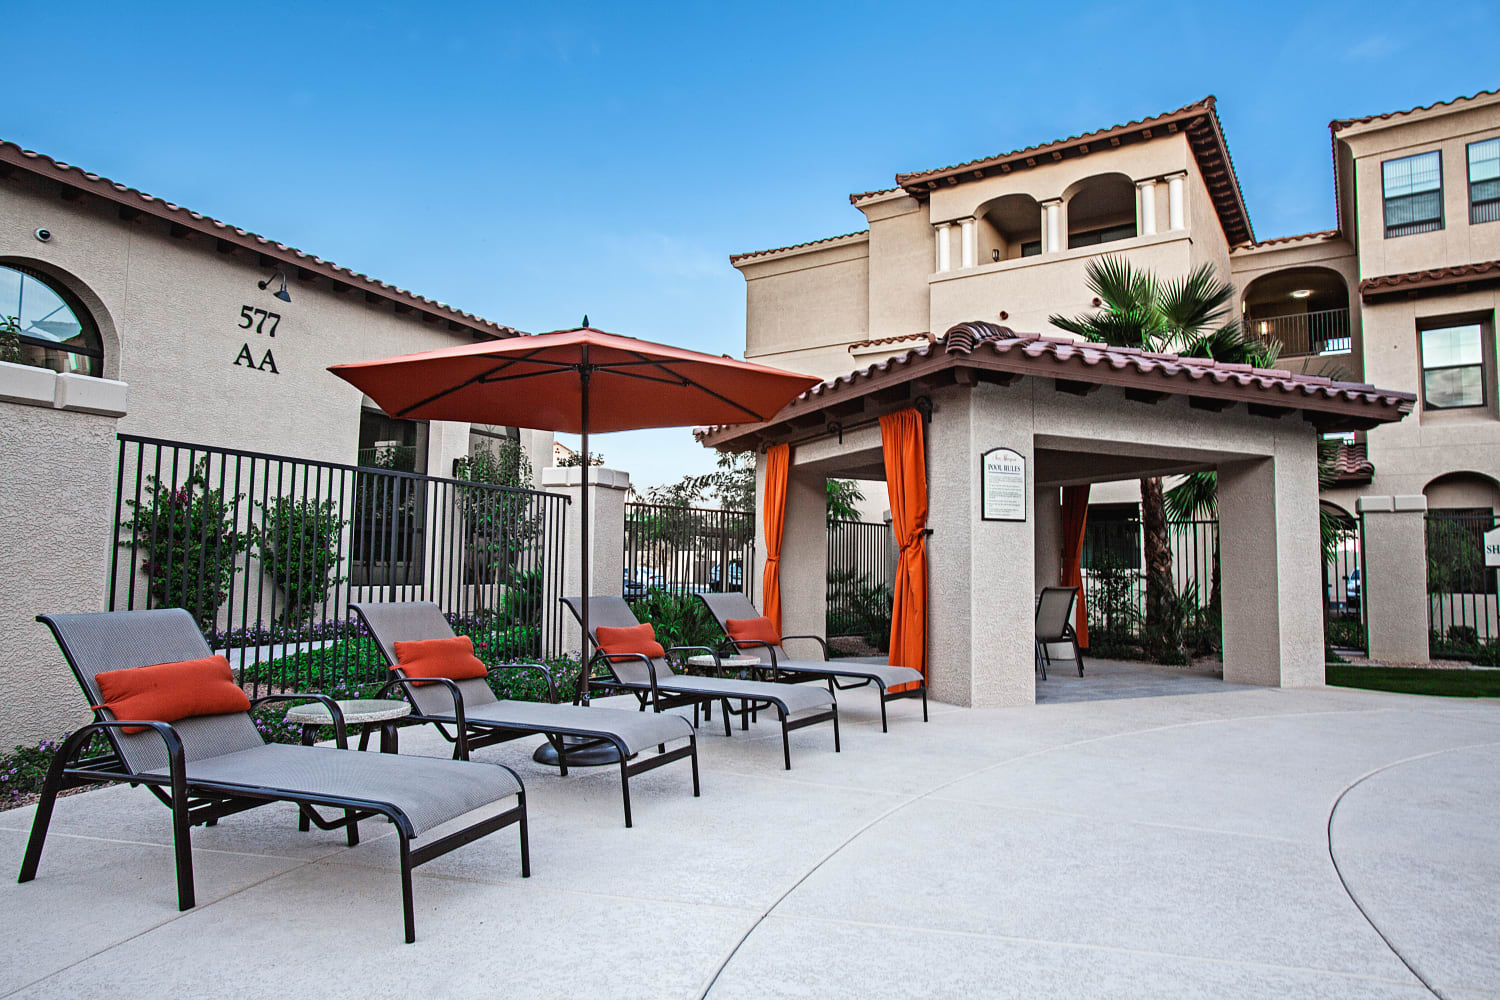 Enjoy relaxing by the pool at San Marquis in Tempe, Arizona